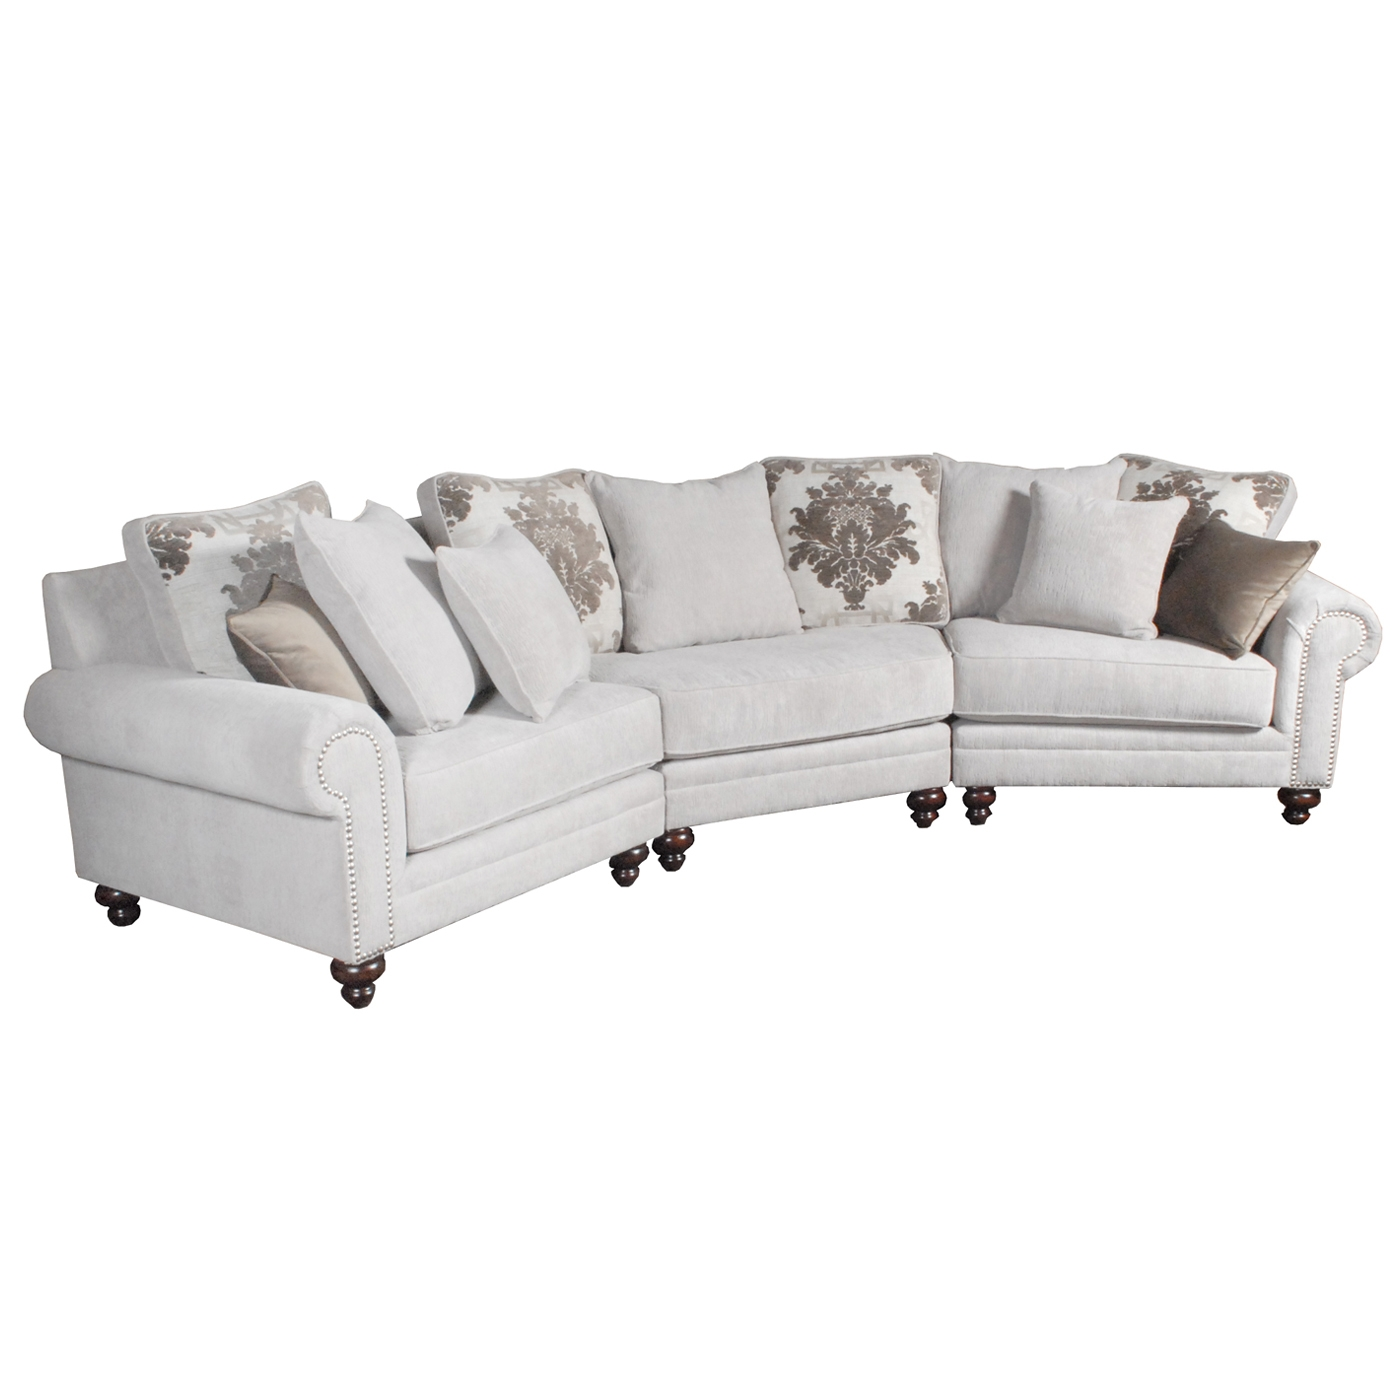 15 45 Degree Sectional Sofa Ideas